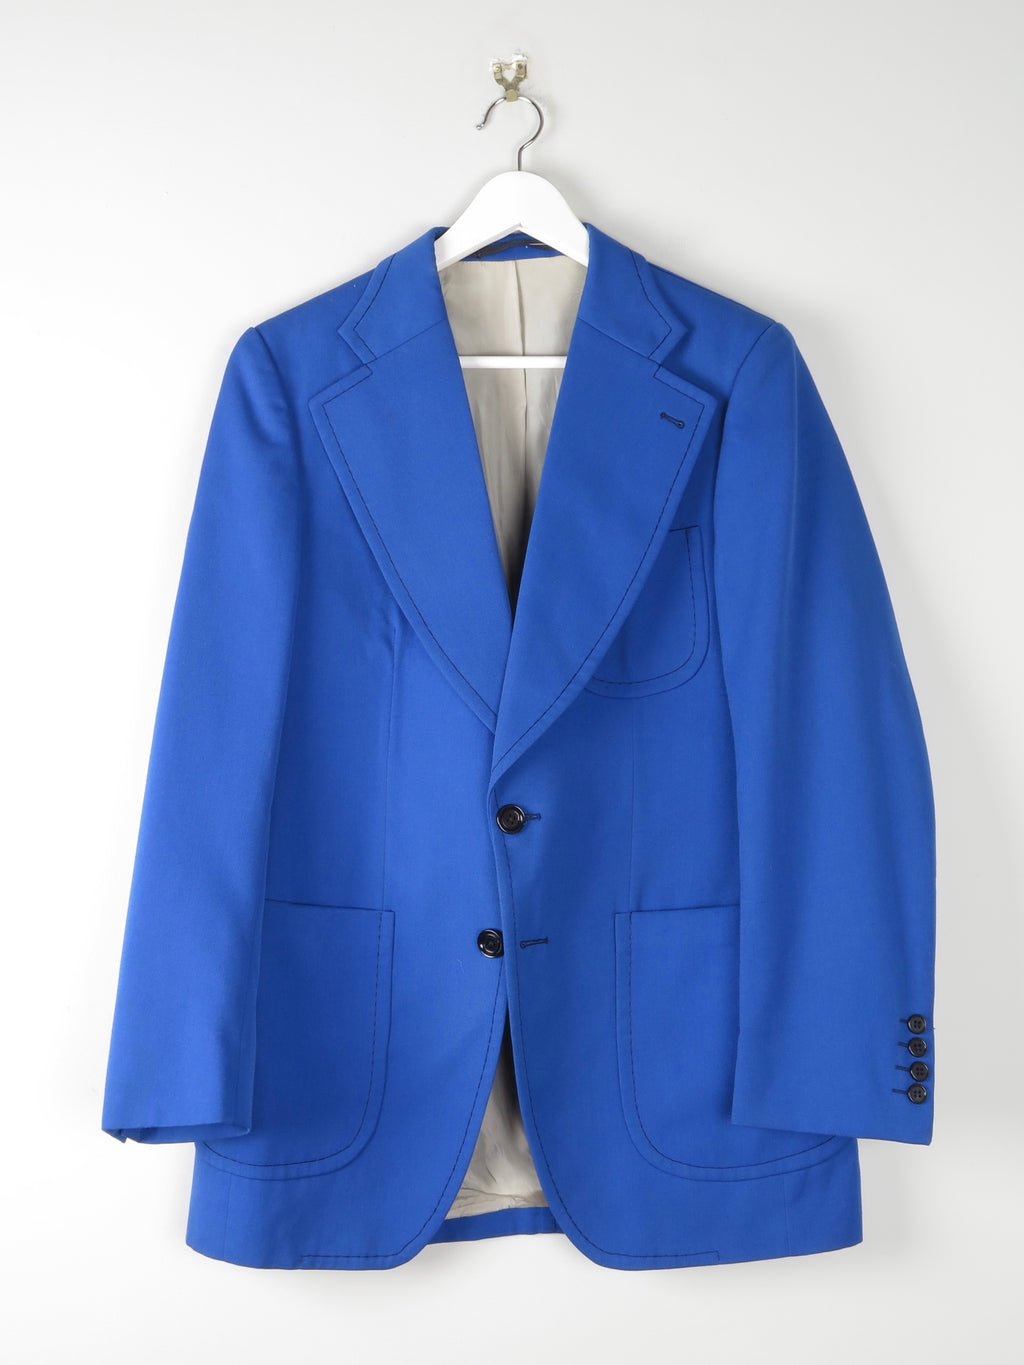 1970s Electric Blue Tailored Jacket 40""